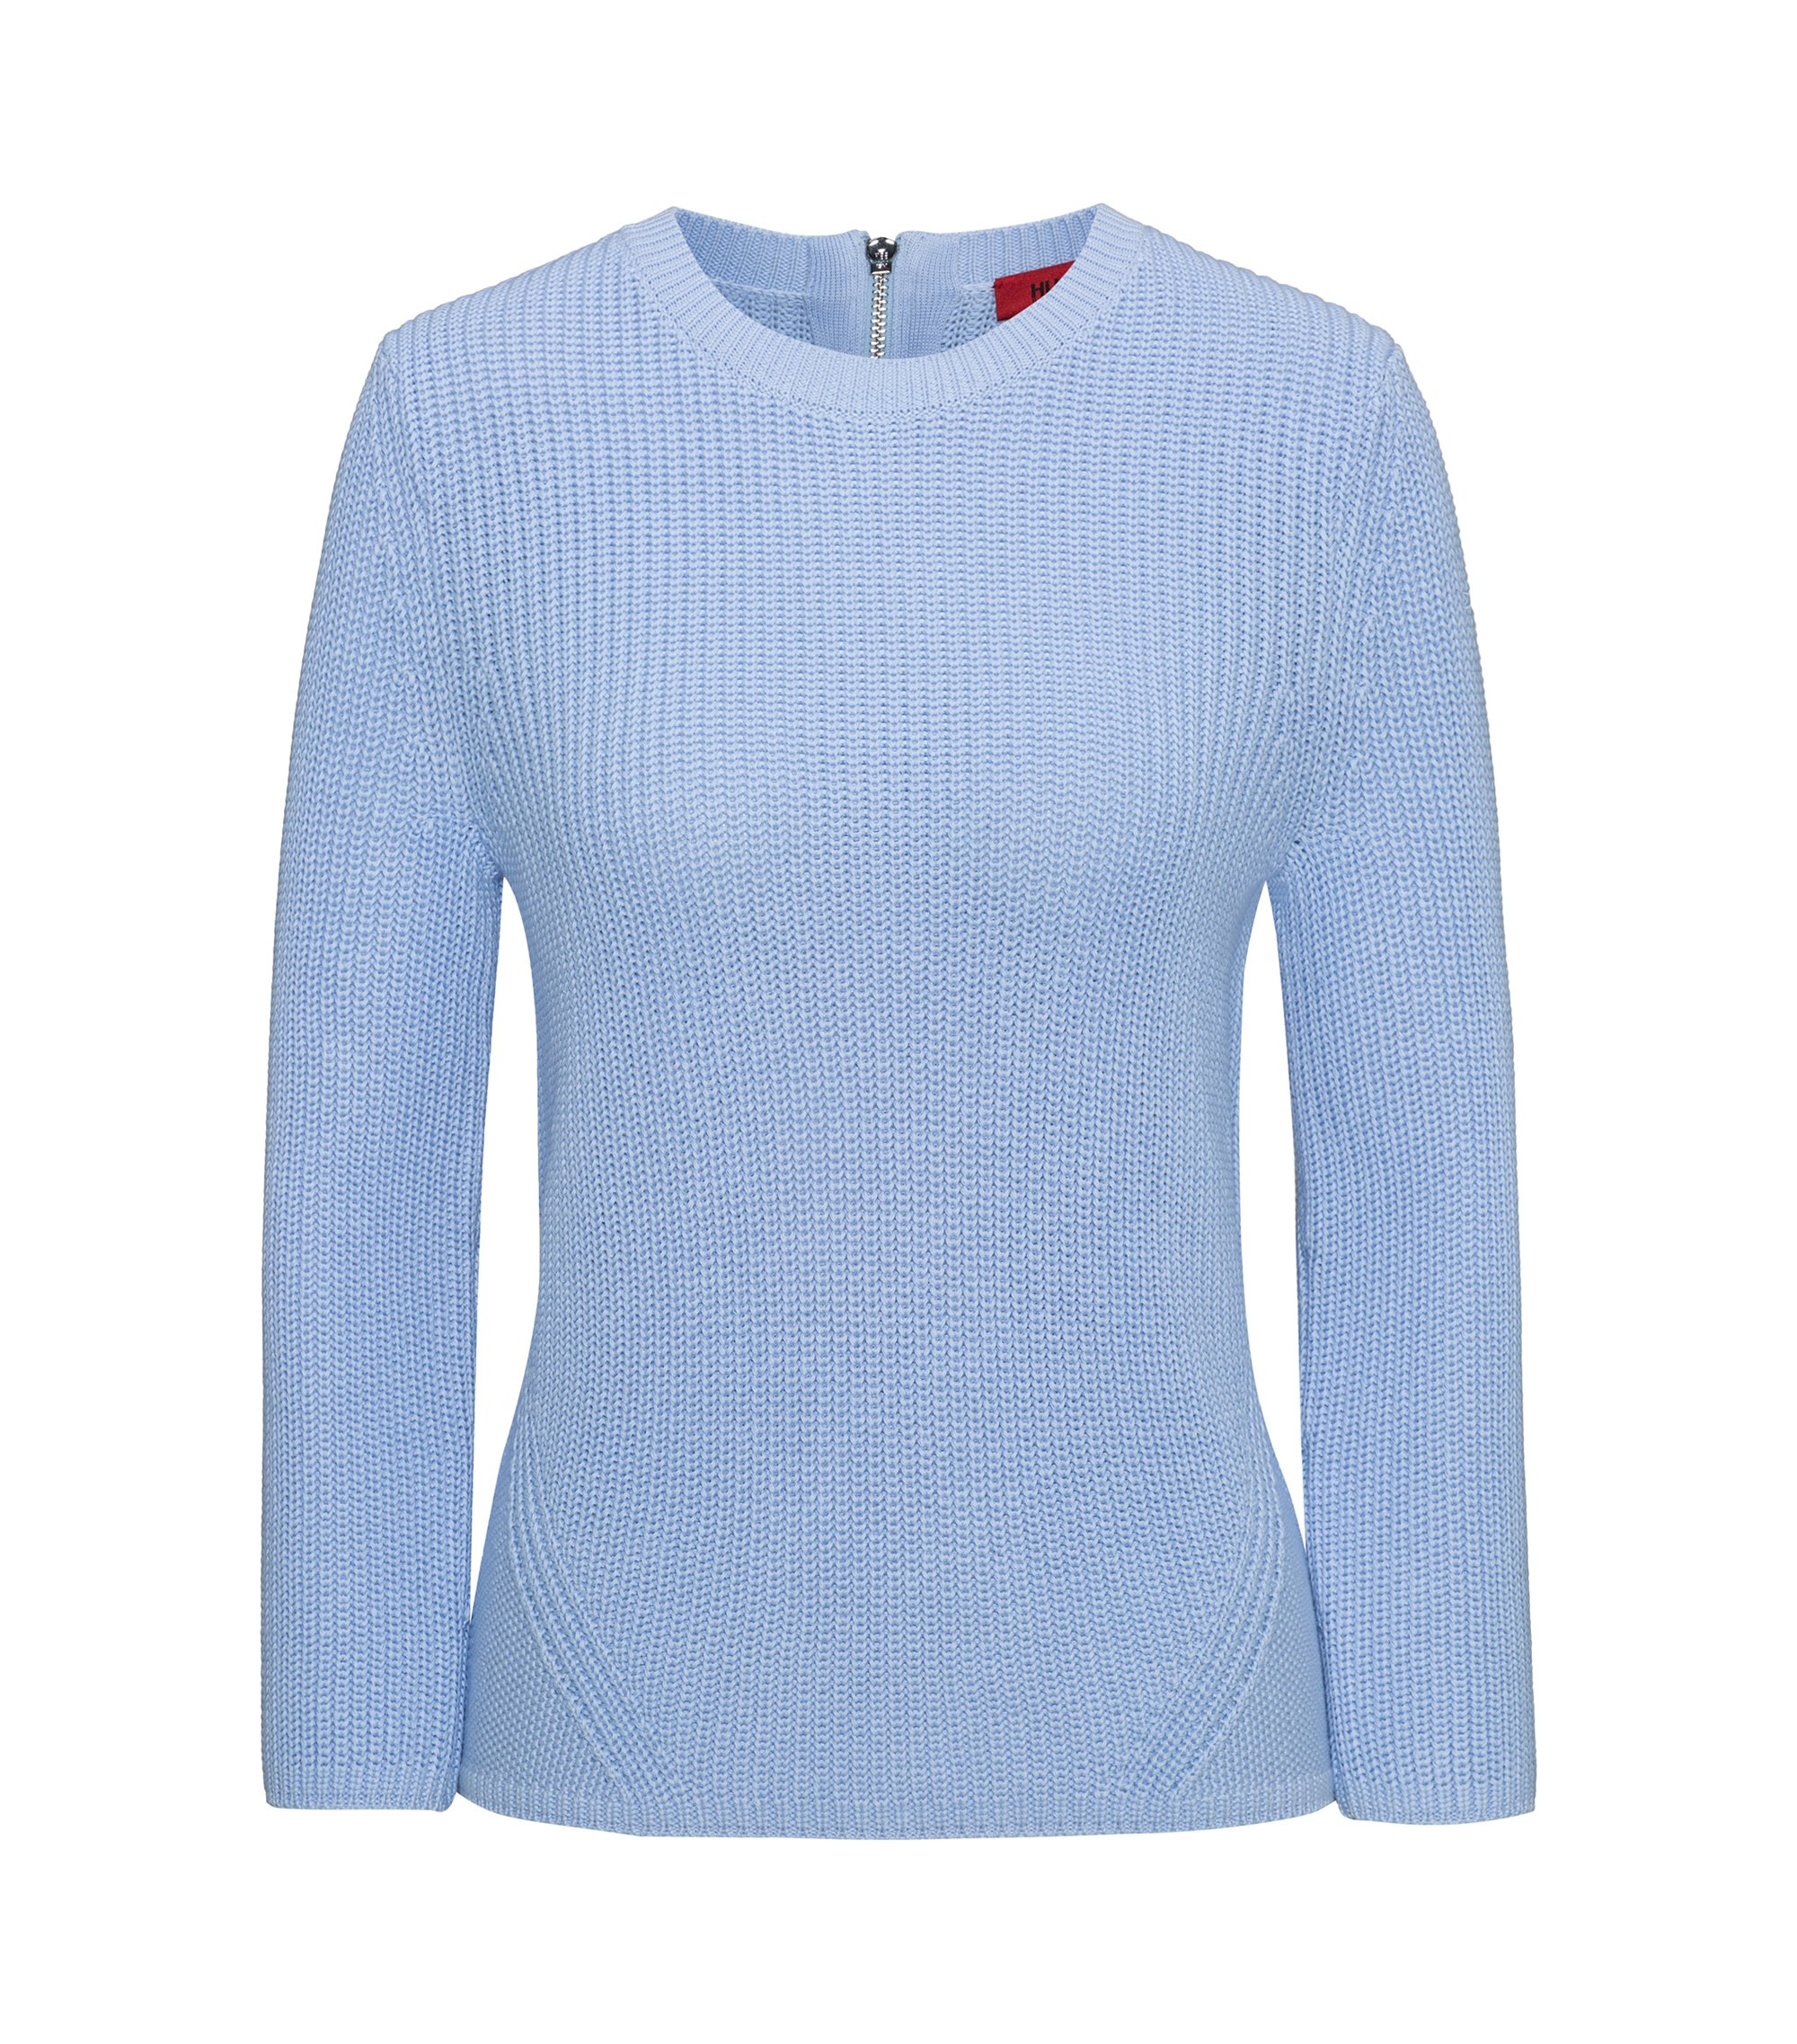 Half-cardigan knitted sweater in pure cotton, Light Blue